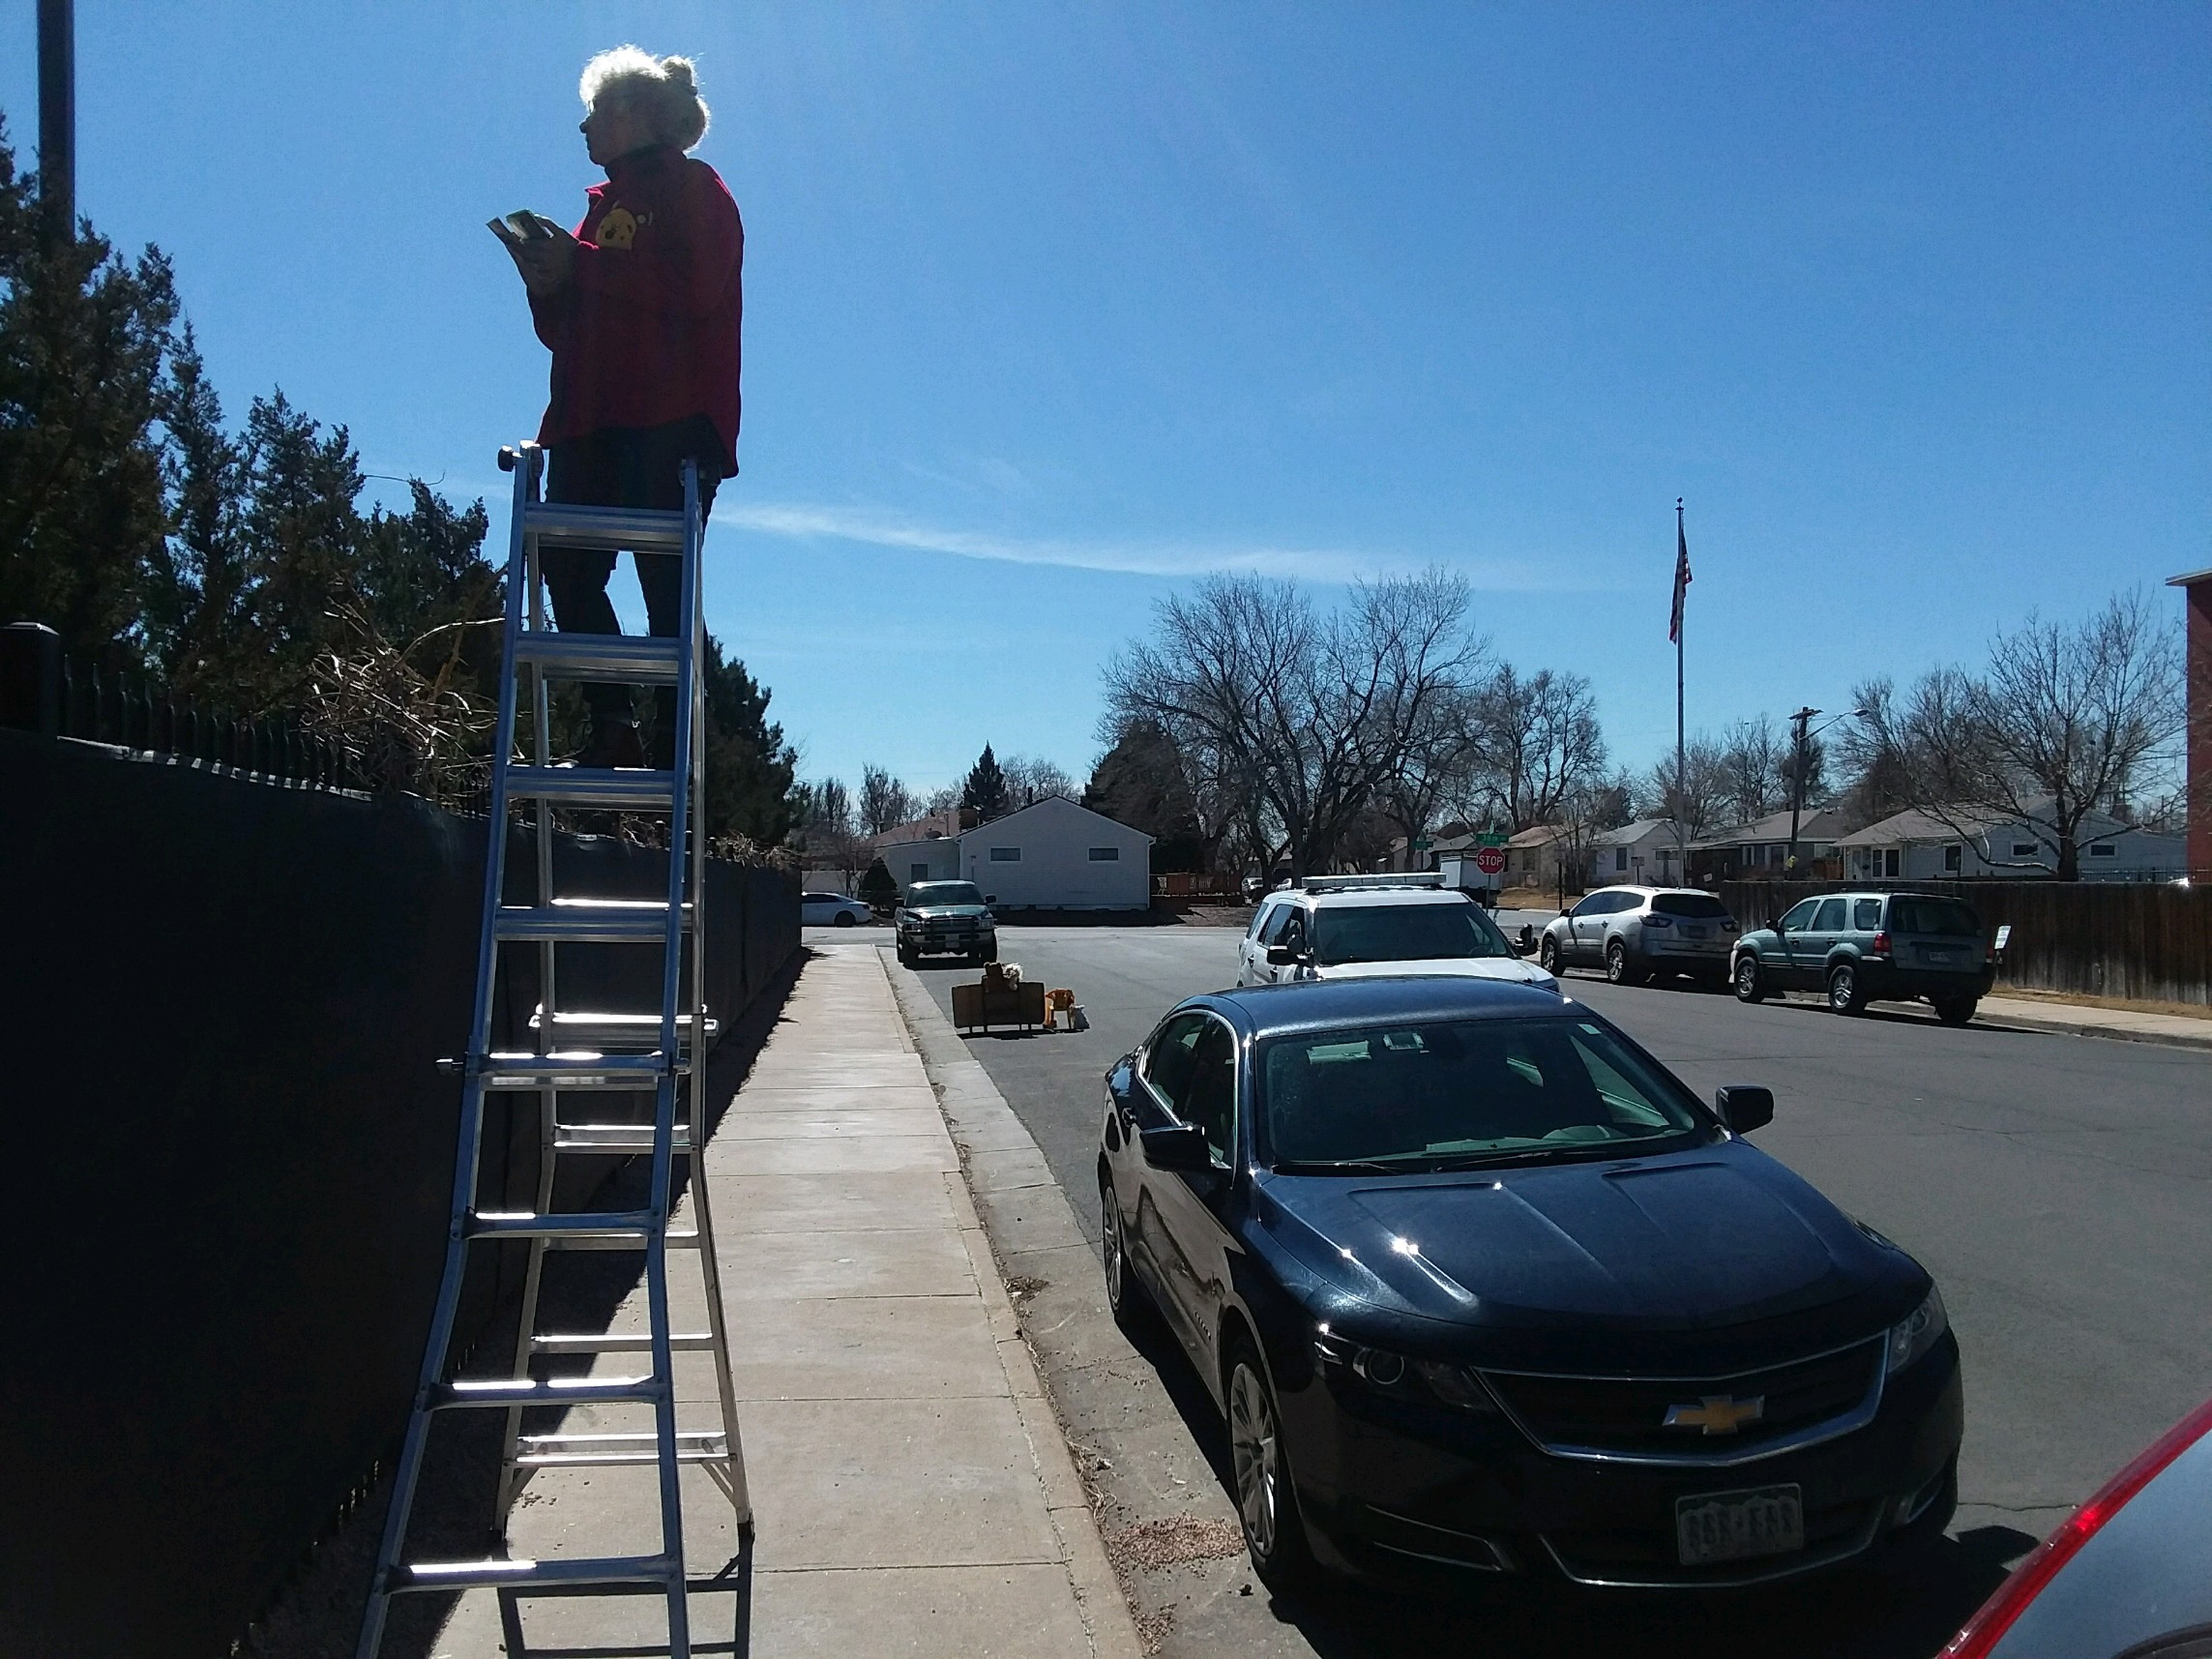 The day Denver police charge abolitionist Ken Scott, Jo Scott's husband, with ladder-blocking Planned Parenthood's sidewalk